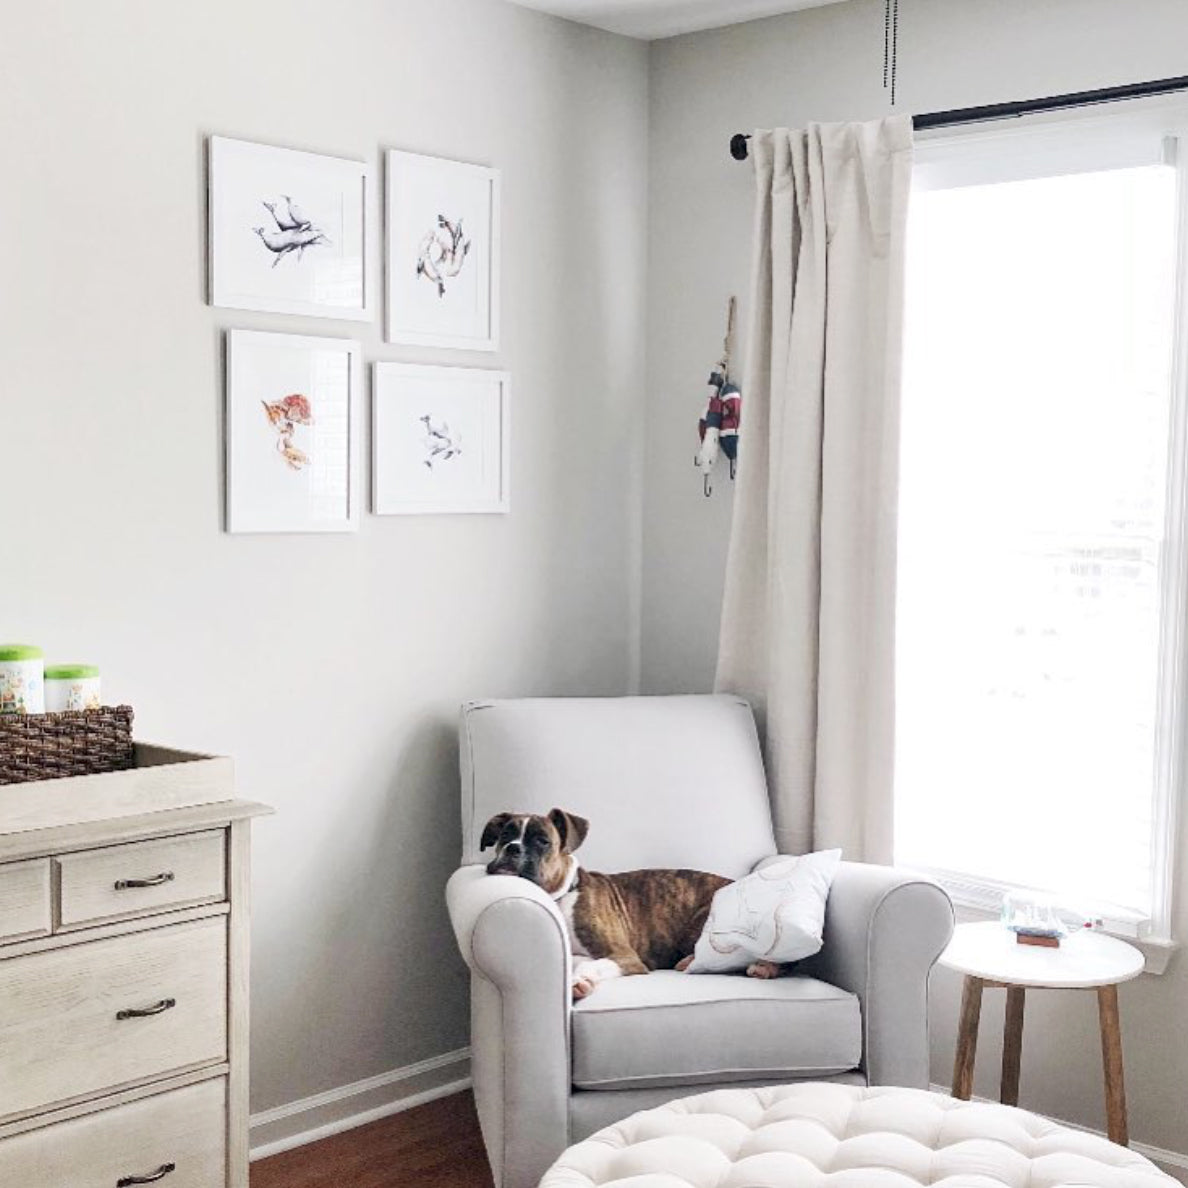 7 Tips for Making a Small Nursery Feel Bigger